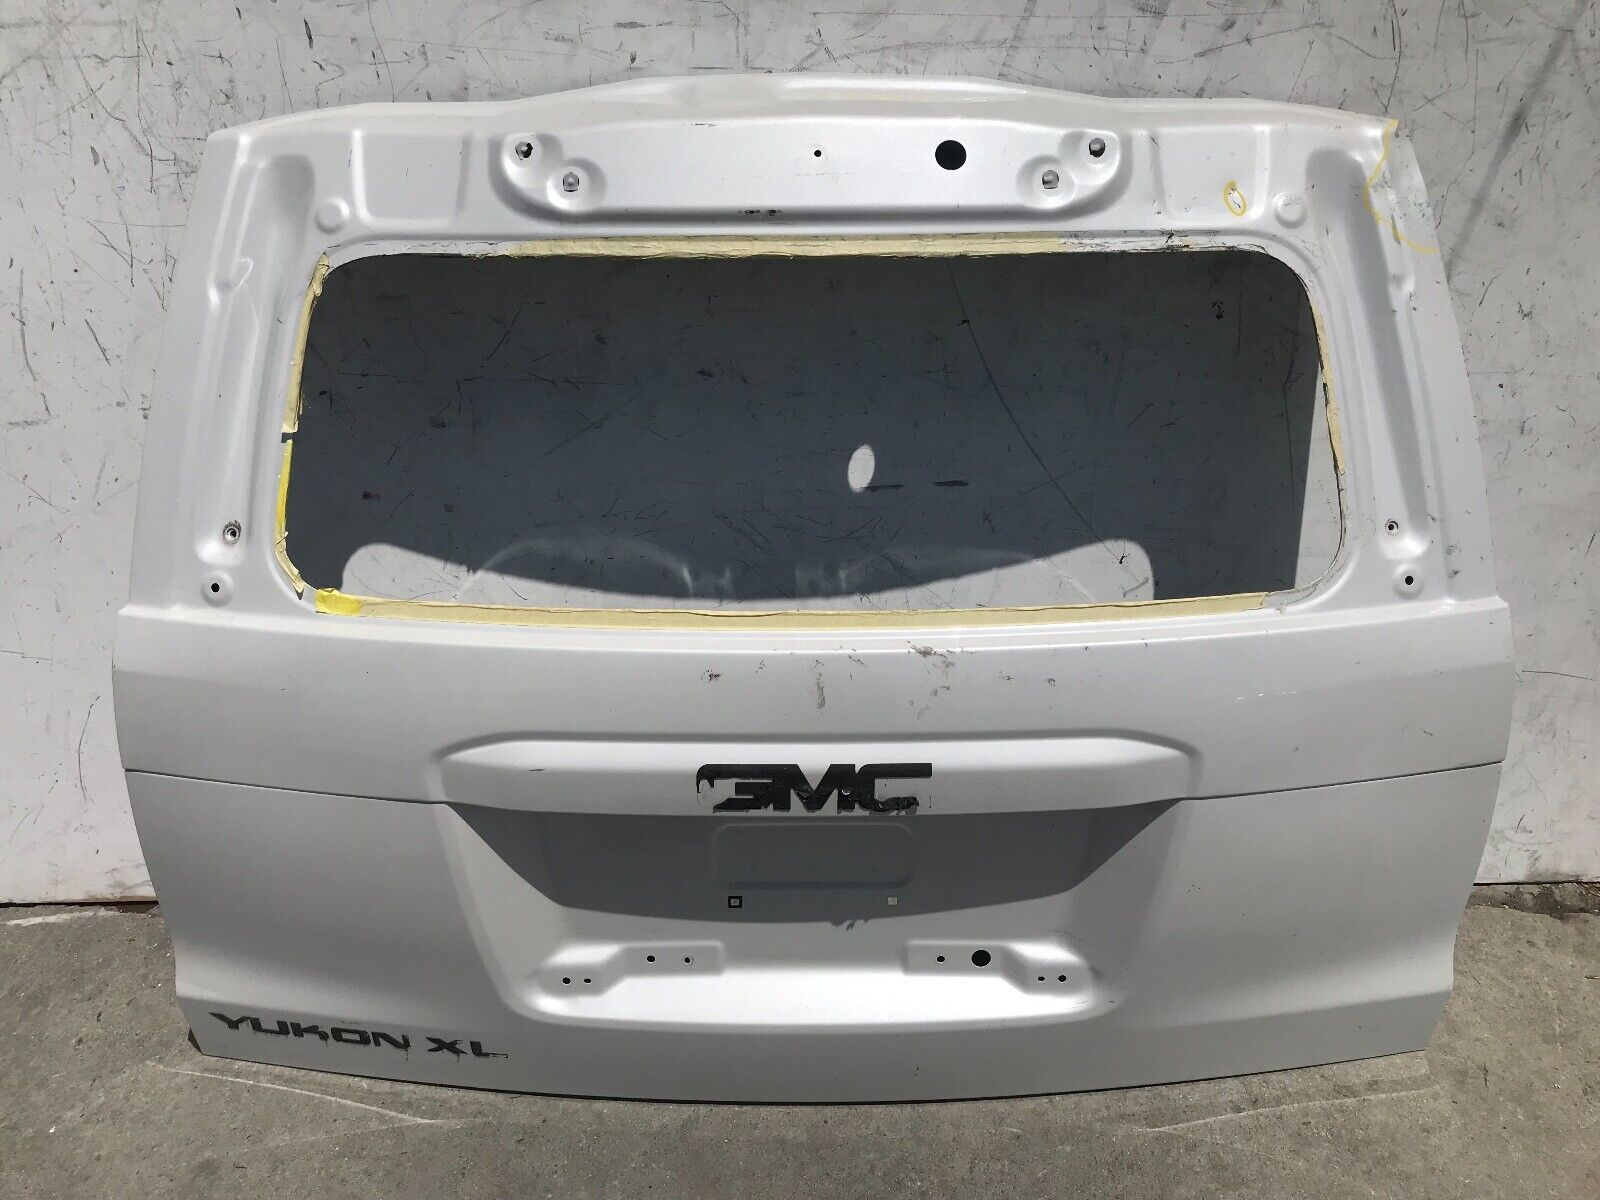 Used Chevrolet Suburban Tailgates and Liftgates for Sale